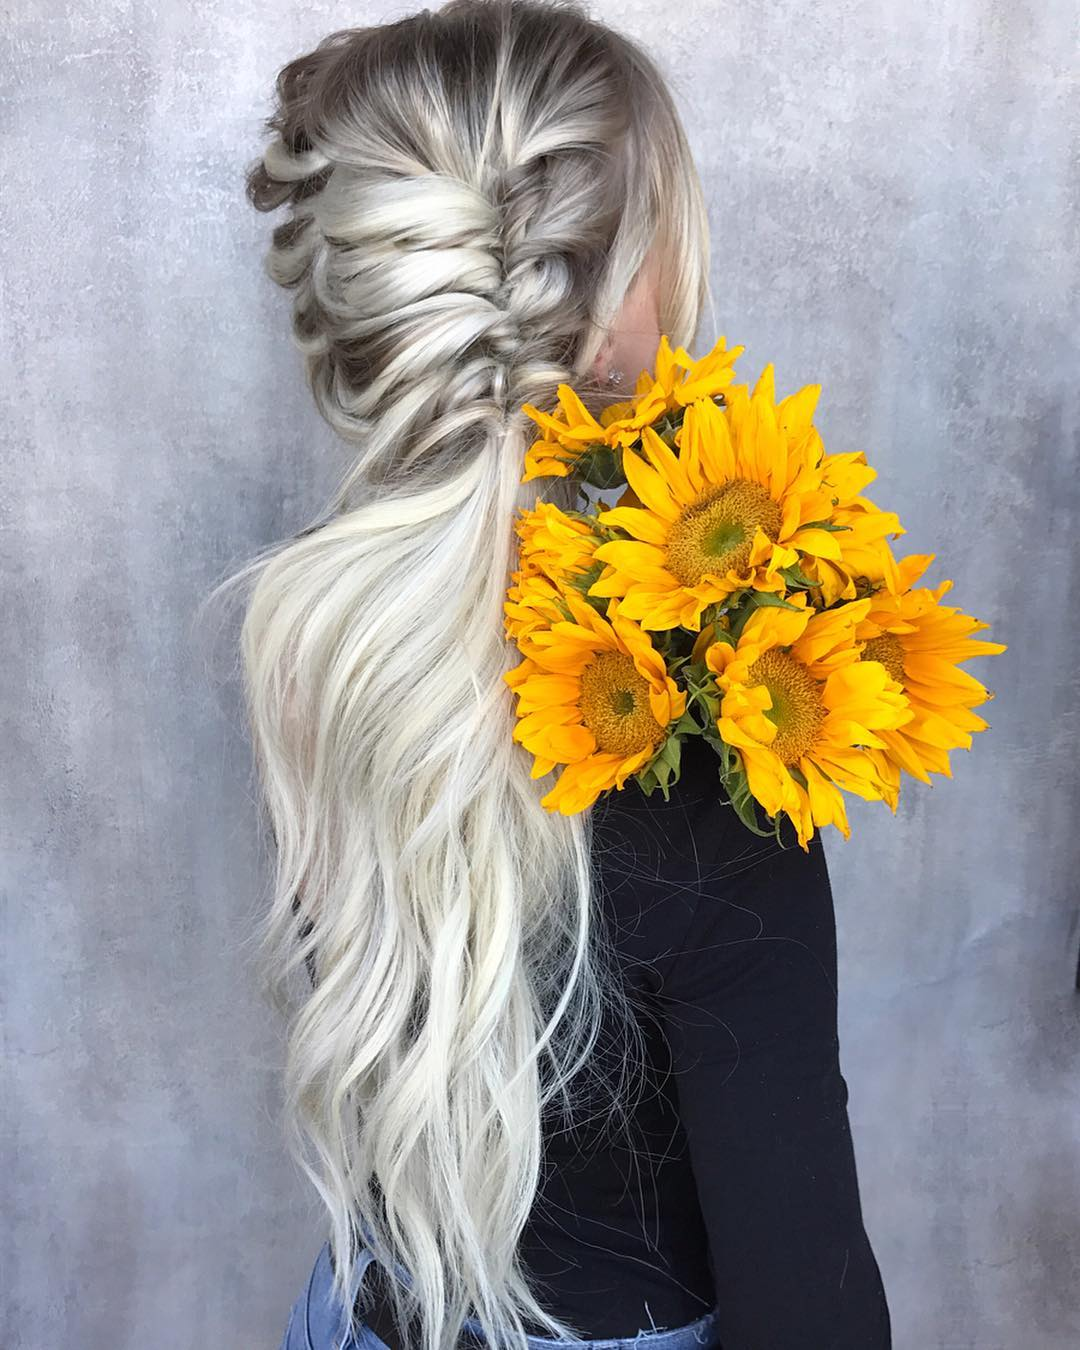 hair styles for girls long hair 10 braided hairstyle ideas for weddings 9304 | messy braided hairstyle with long hair women long hairstyles for summer 1